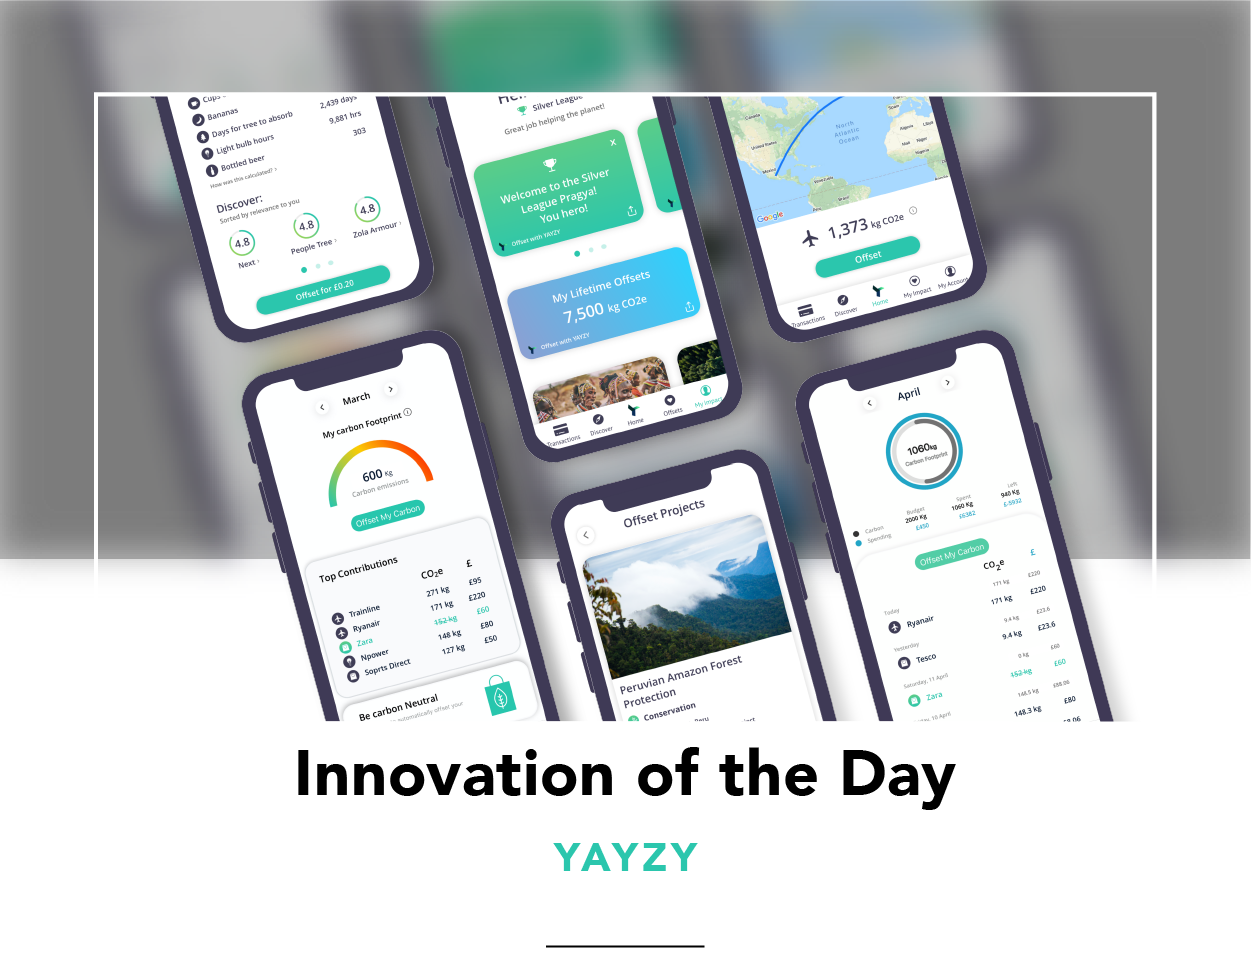 Various pages within Yayzy showing the app's features